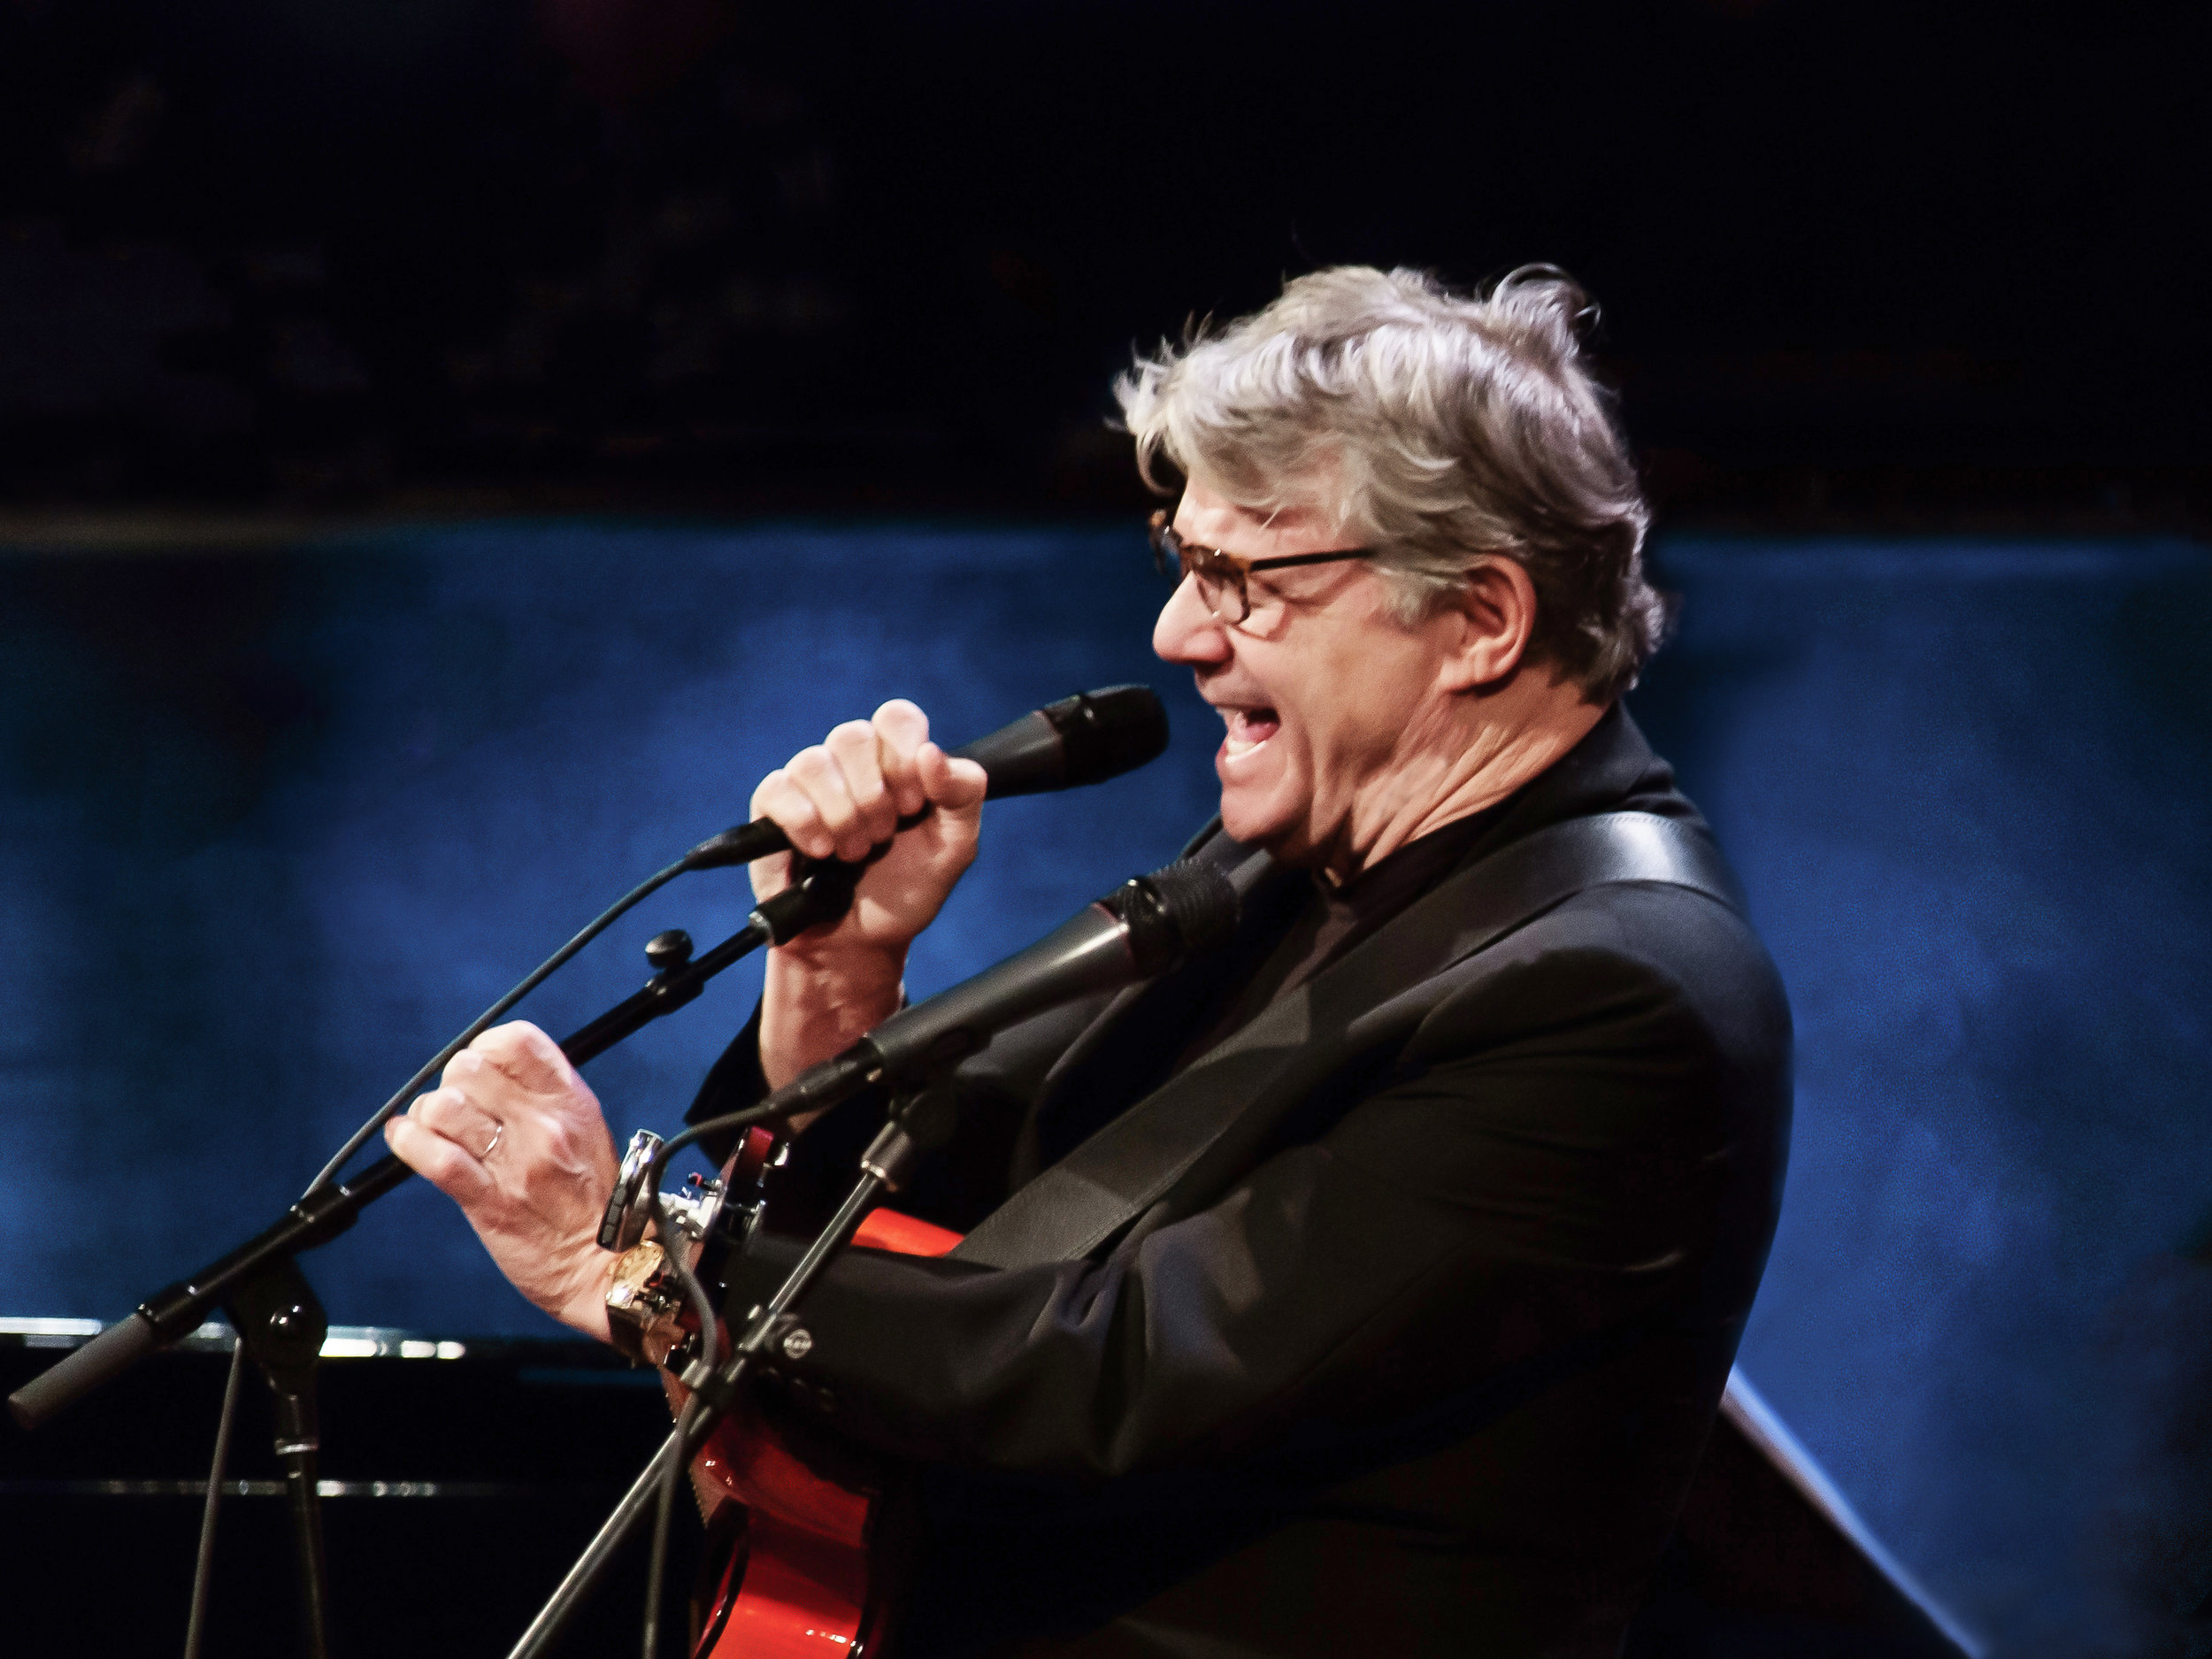 Steve Miller. Photo by Lawrence Sumulong.